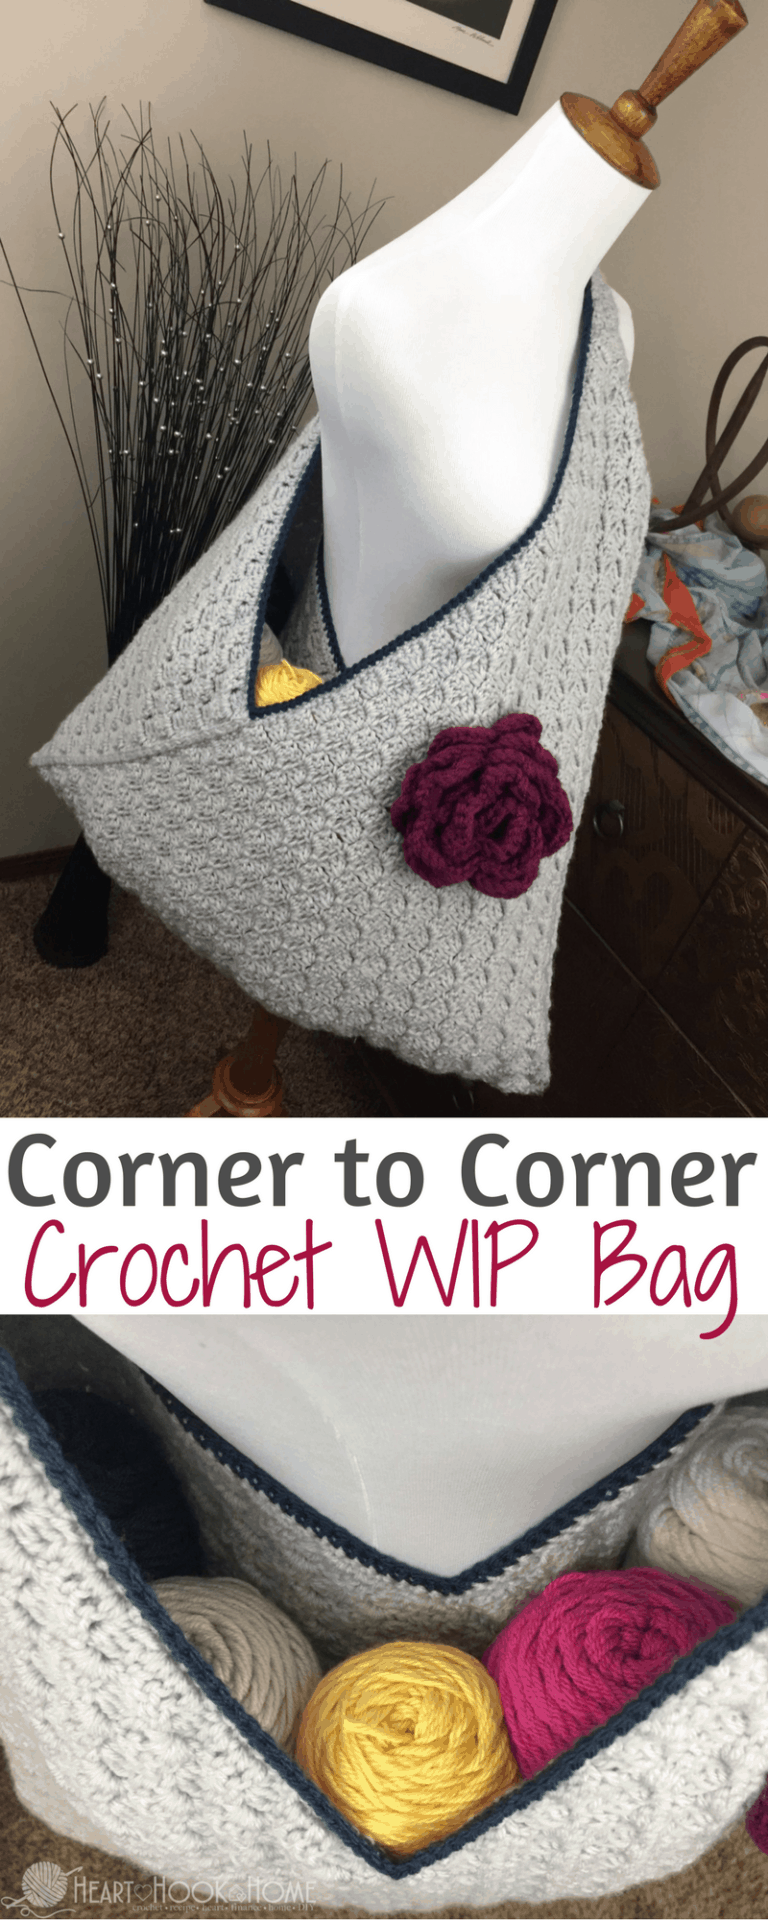 Crochet WIP Bag (Work In Progress) Using Corner to Corner